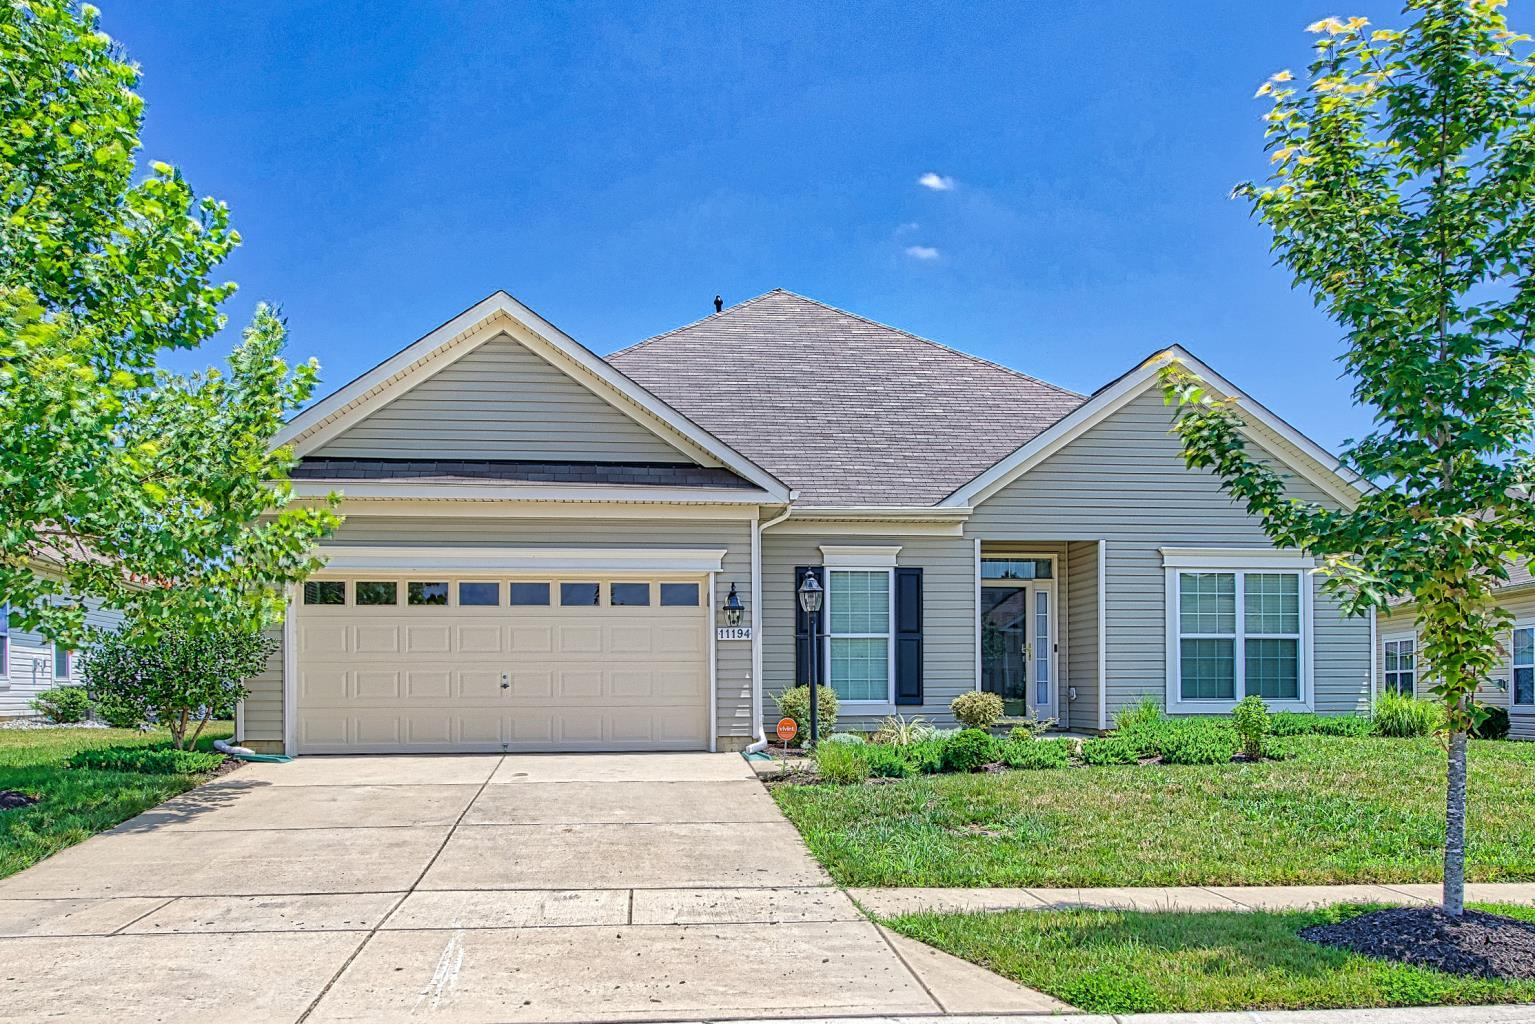 Marie  Lally presents 11194 Commanders Lane, in the Heritage Community in St Charles!  Call Marie Lally at 301-748-8698 to tour this fabulous rambler!